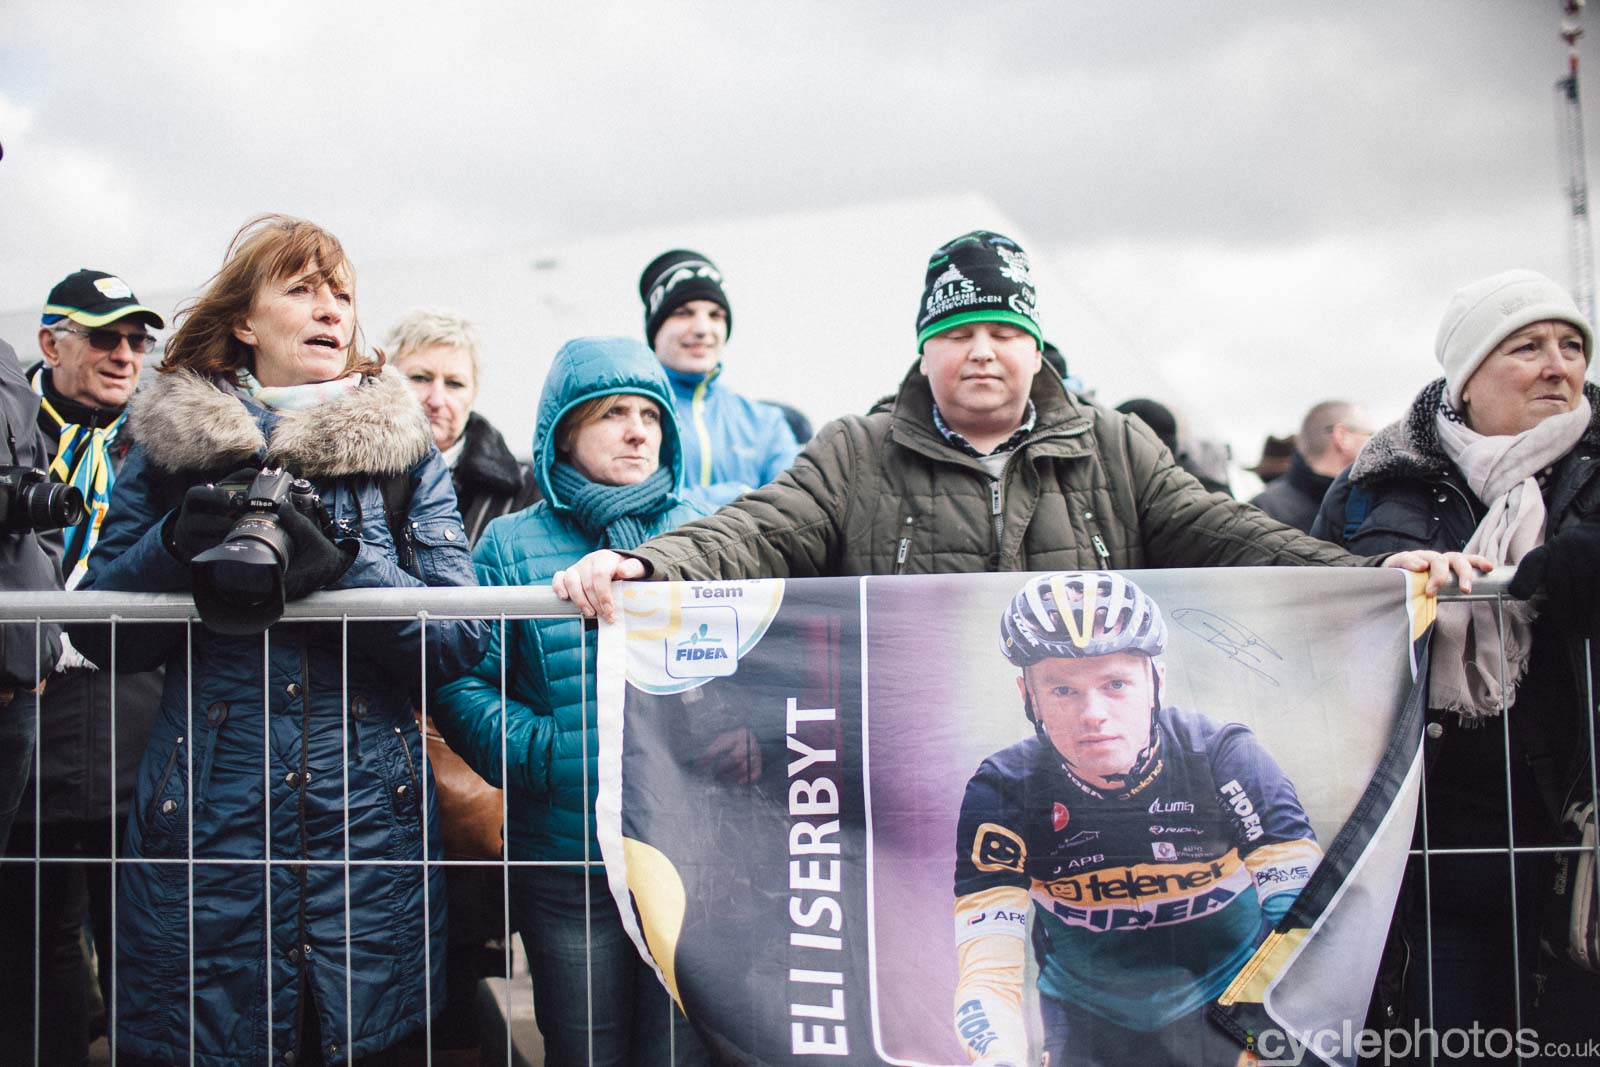 2016-cyclephotos-cyclocross-hoogstraten-131108-eli-iserbyt-supporters